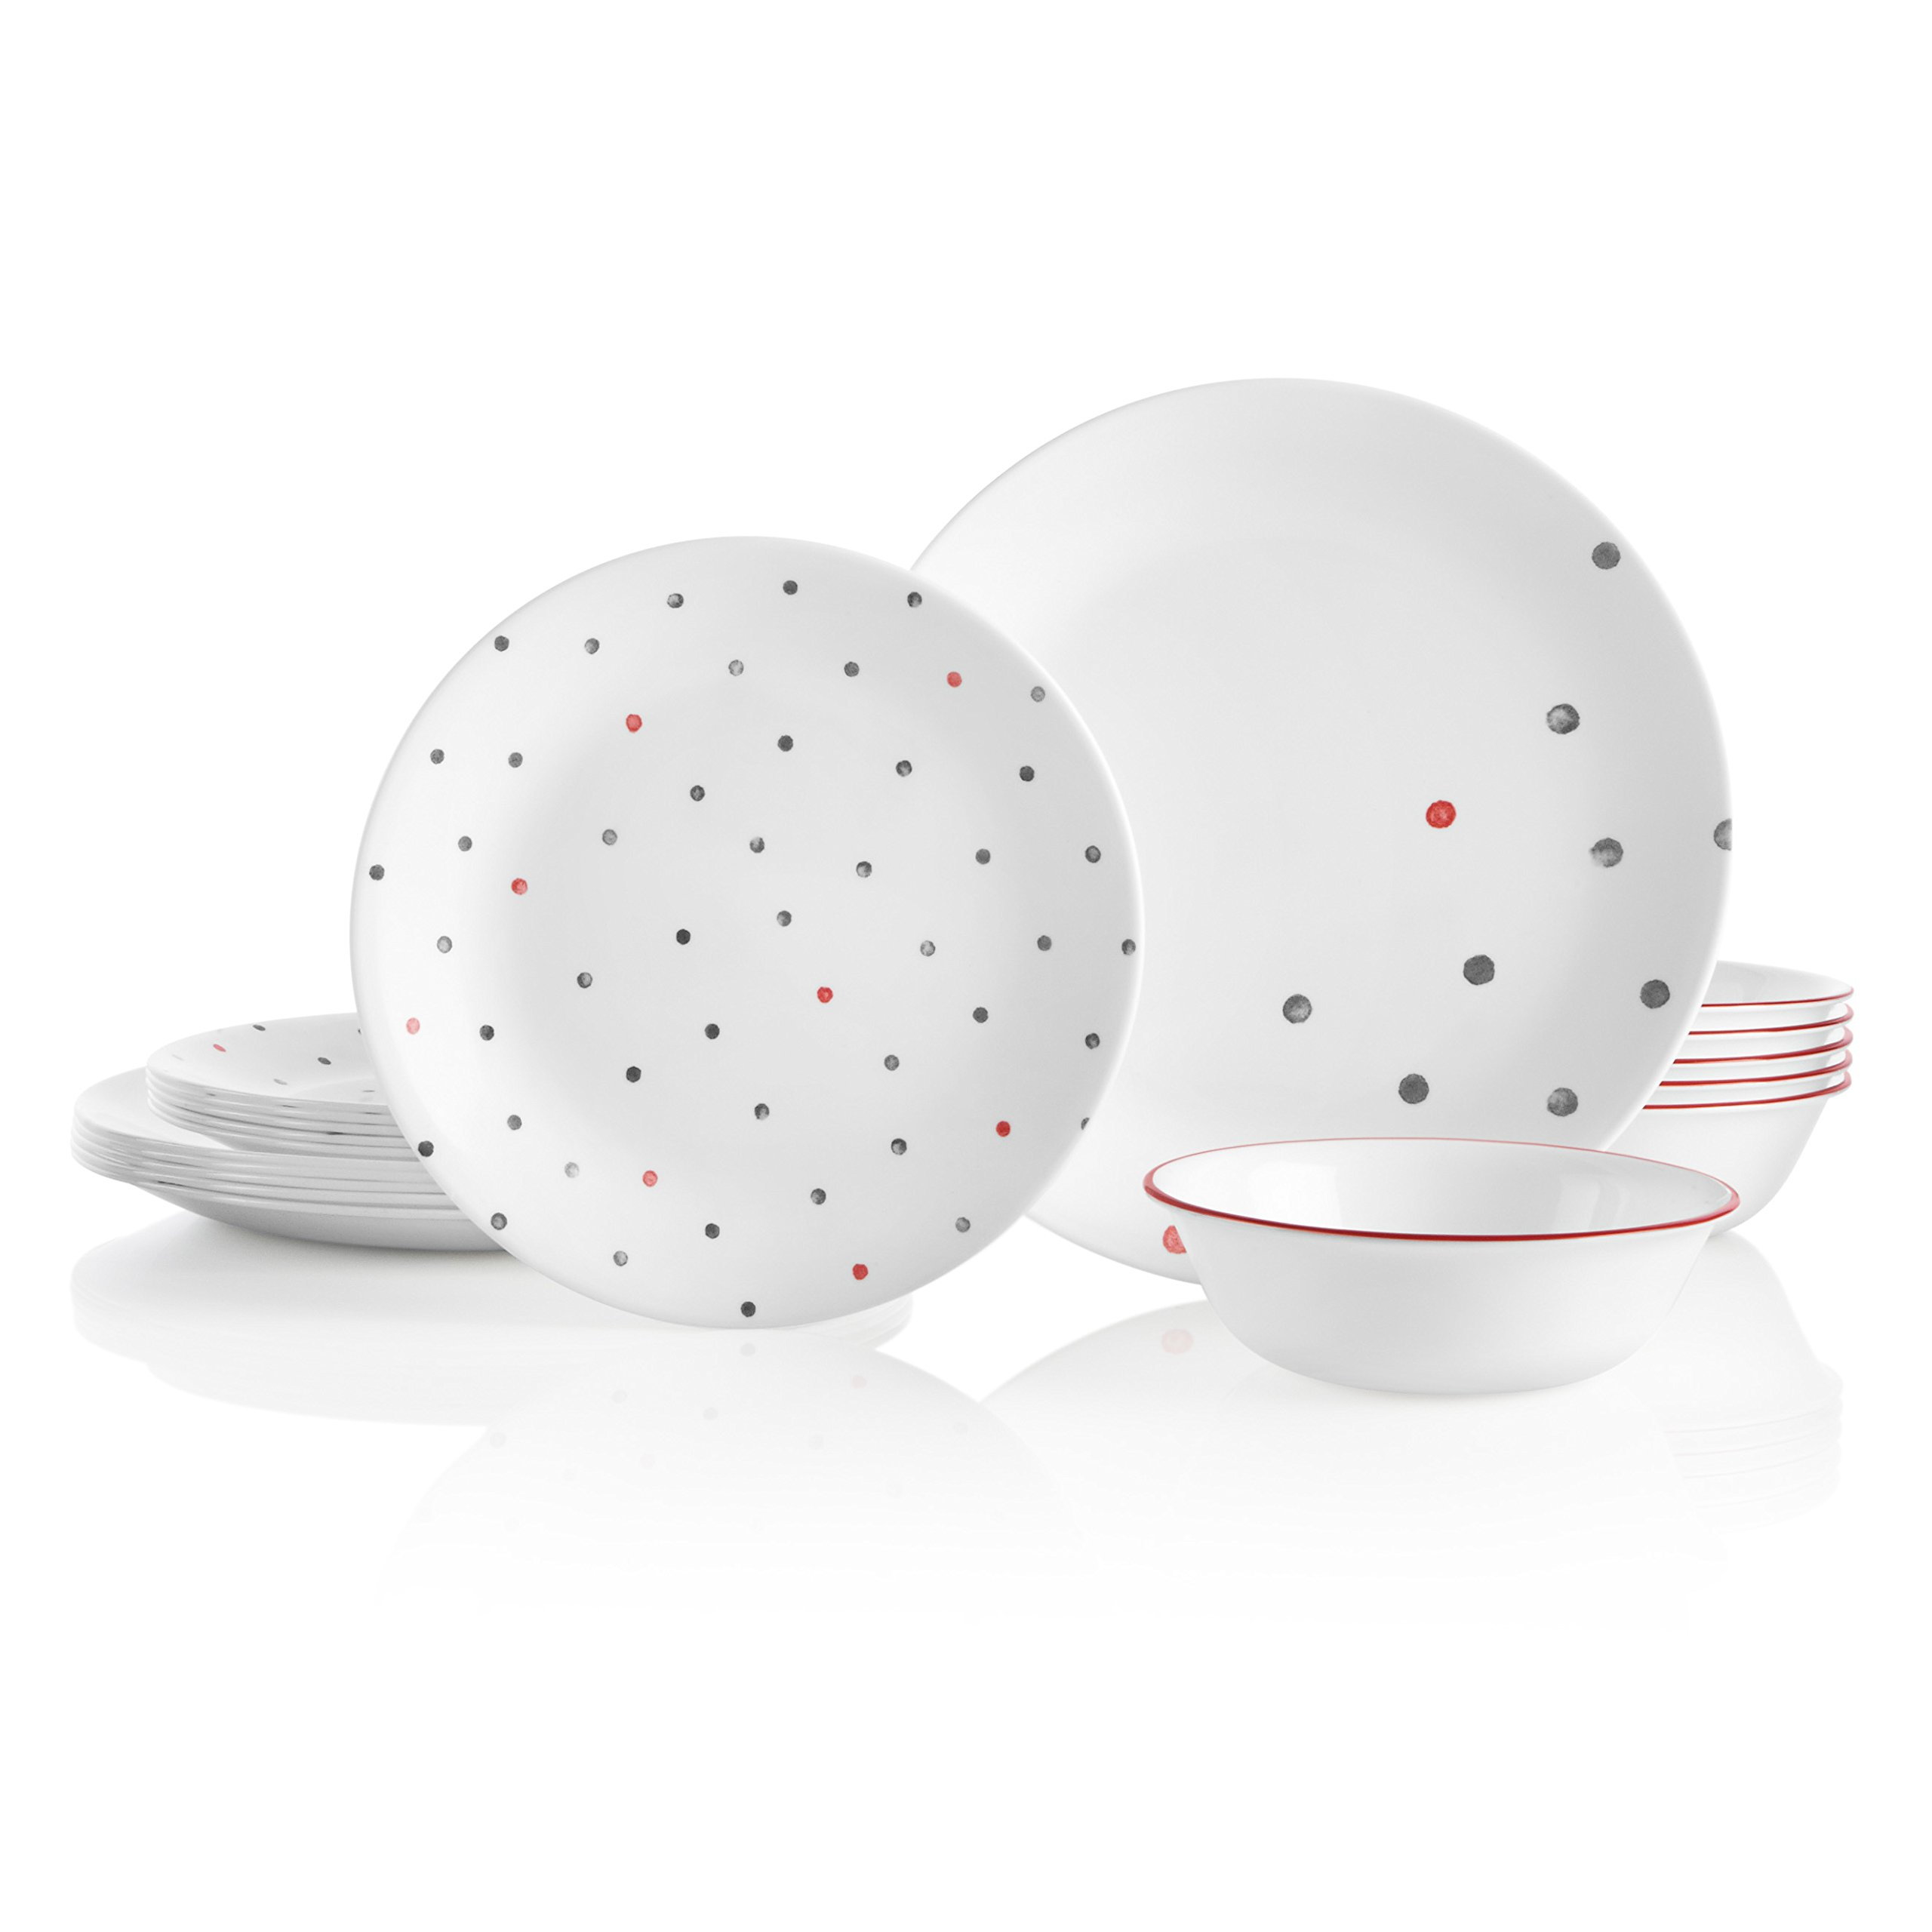 Corelle 1134350 Dinnerware Set 18-Piece Polka Dottie